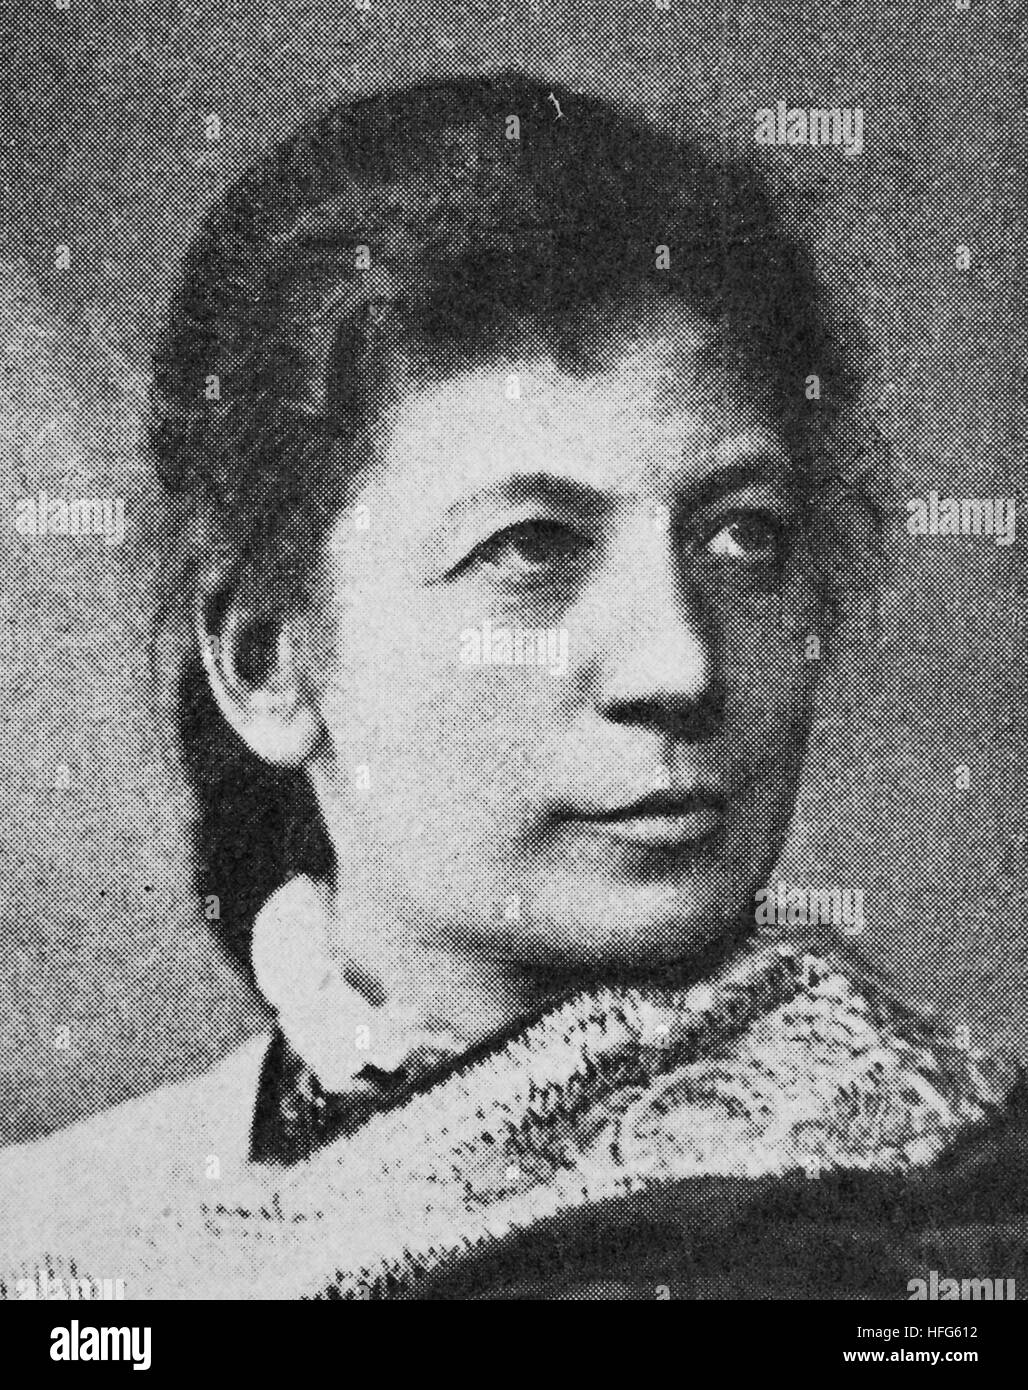 Marianne Brandt, 1842 - 1921, was an Austrian operatic singer with an international reputation, reproduction photo - Stock Image